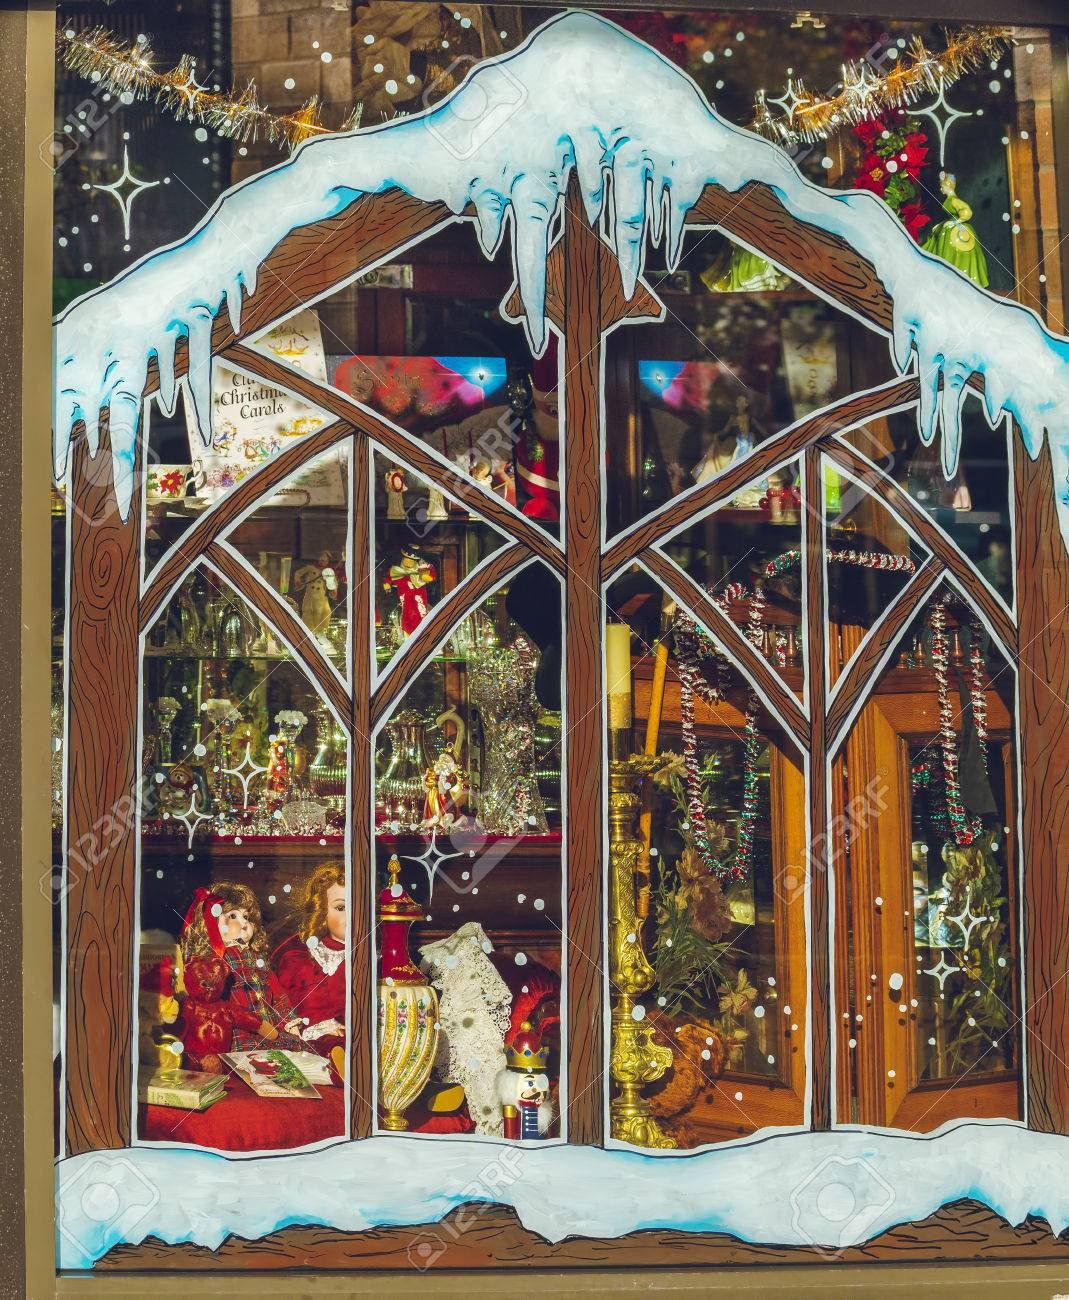 Painted store window with Christmas toys, illumination and and merchandise Stock Photo - 24495606